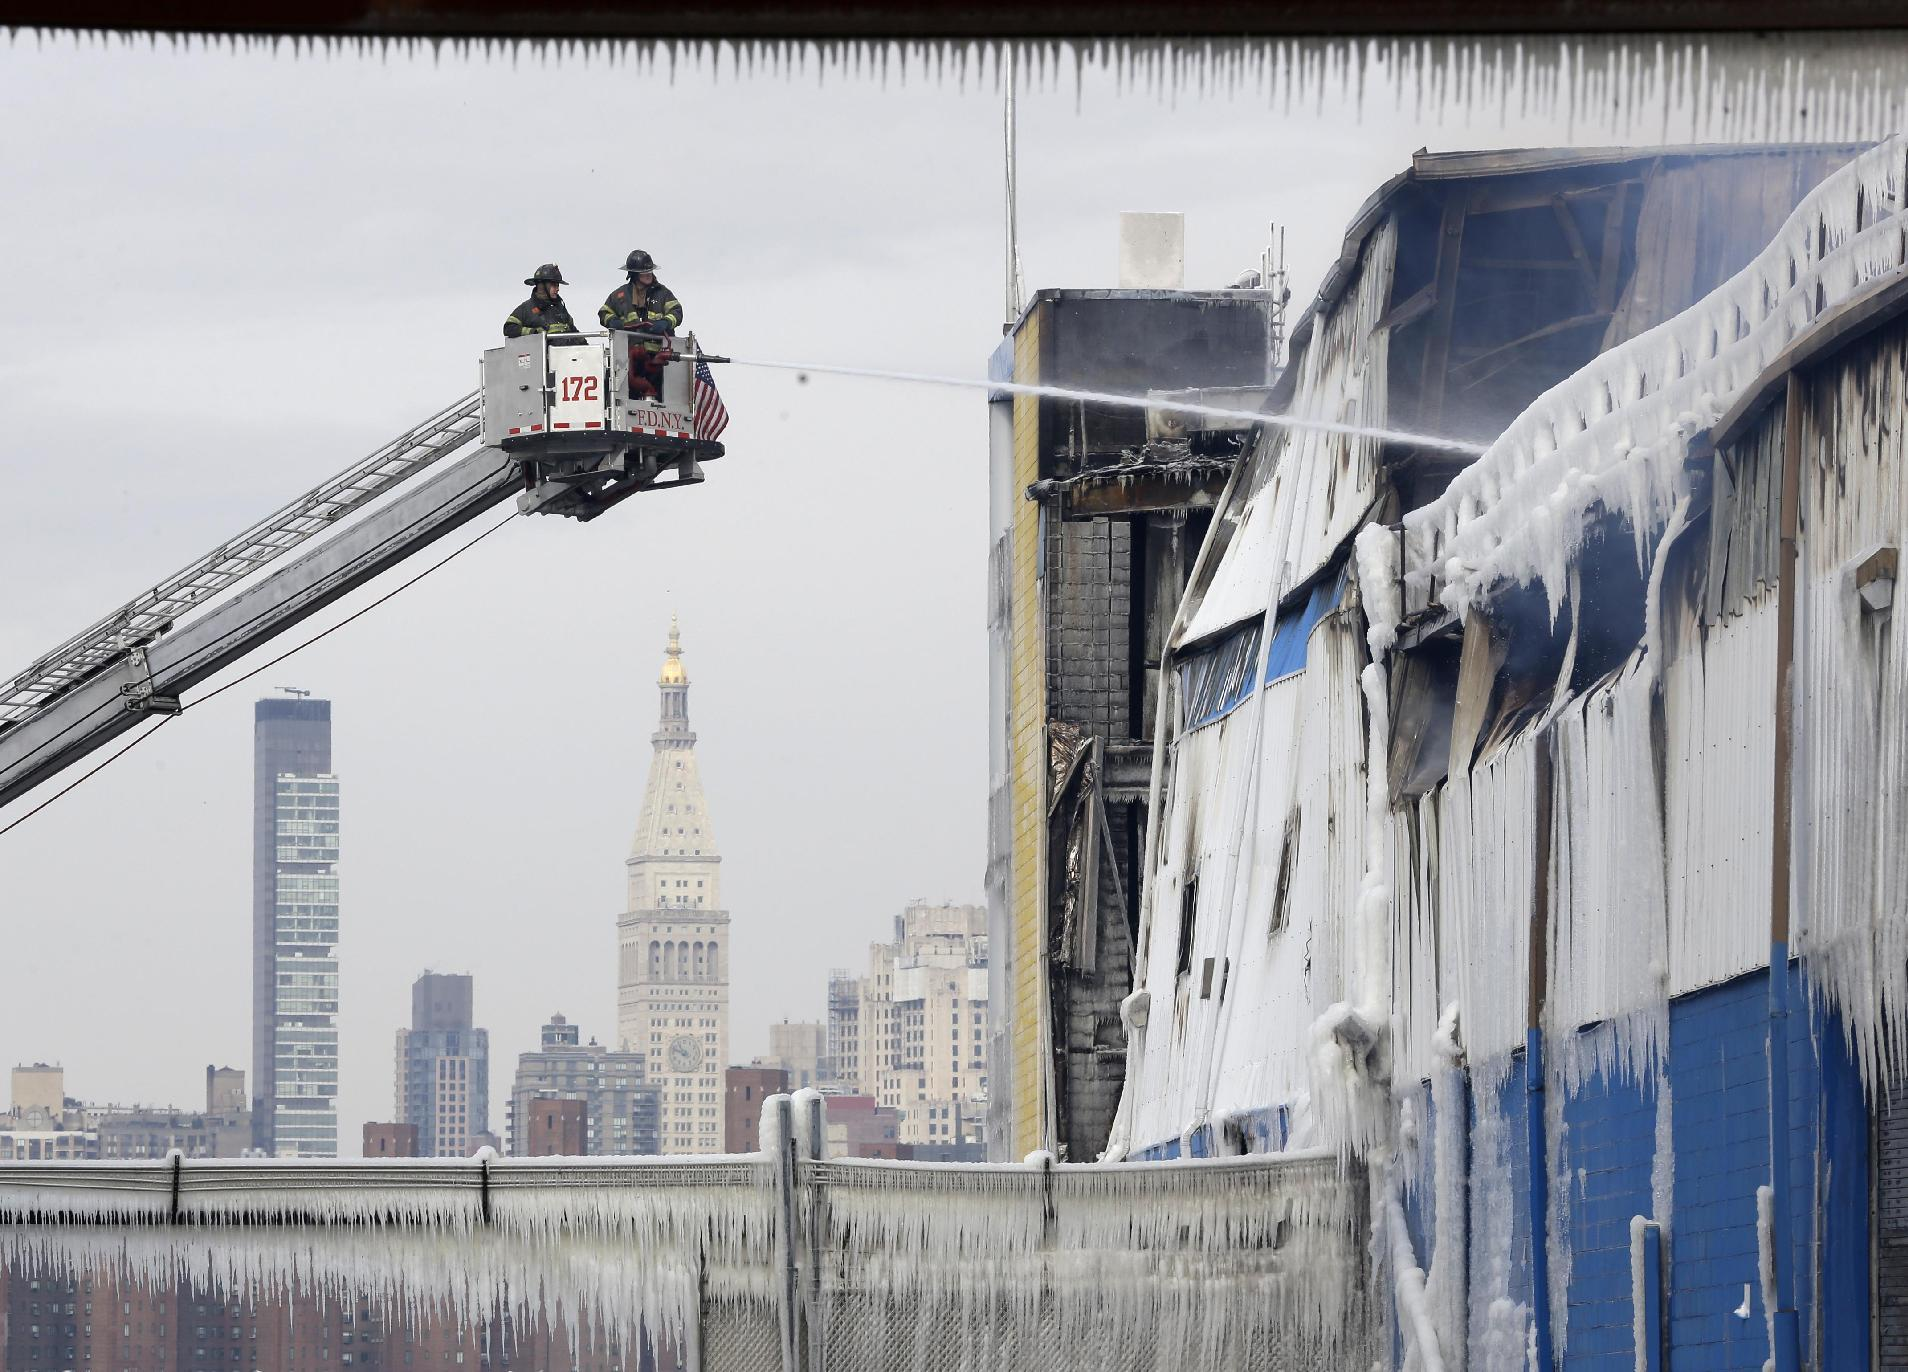 Warehouse fire in trendy NYC neighborhood could smolder for weeks